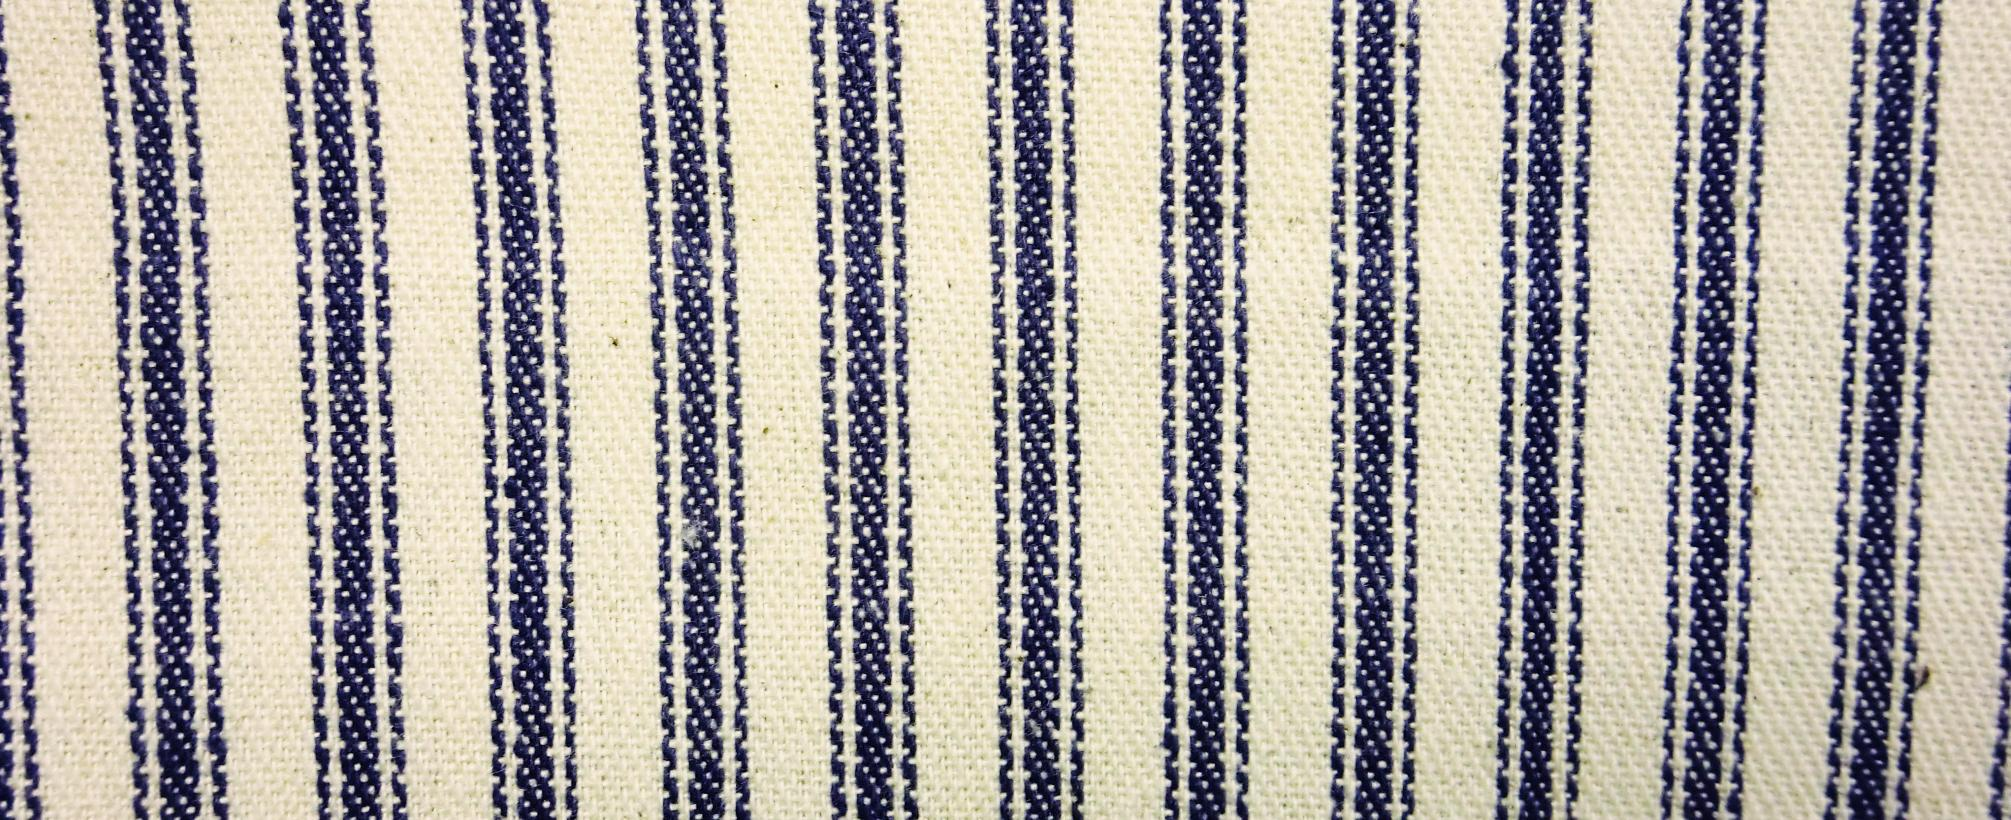 James thompson fabrics ticking stripe navy blue for Ticking fabric